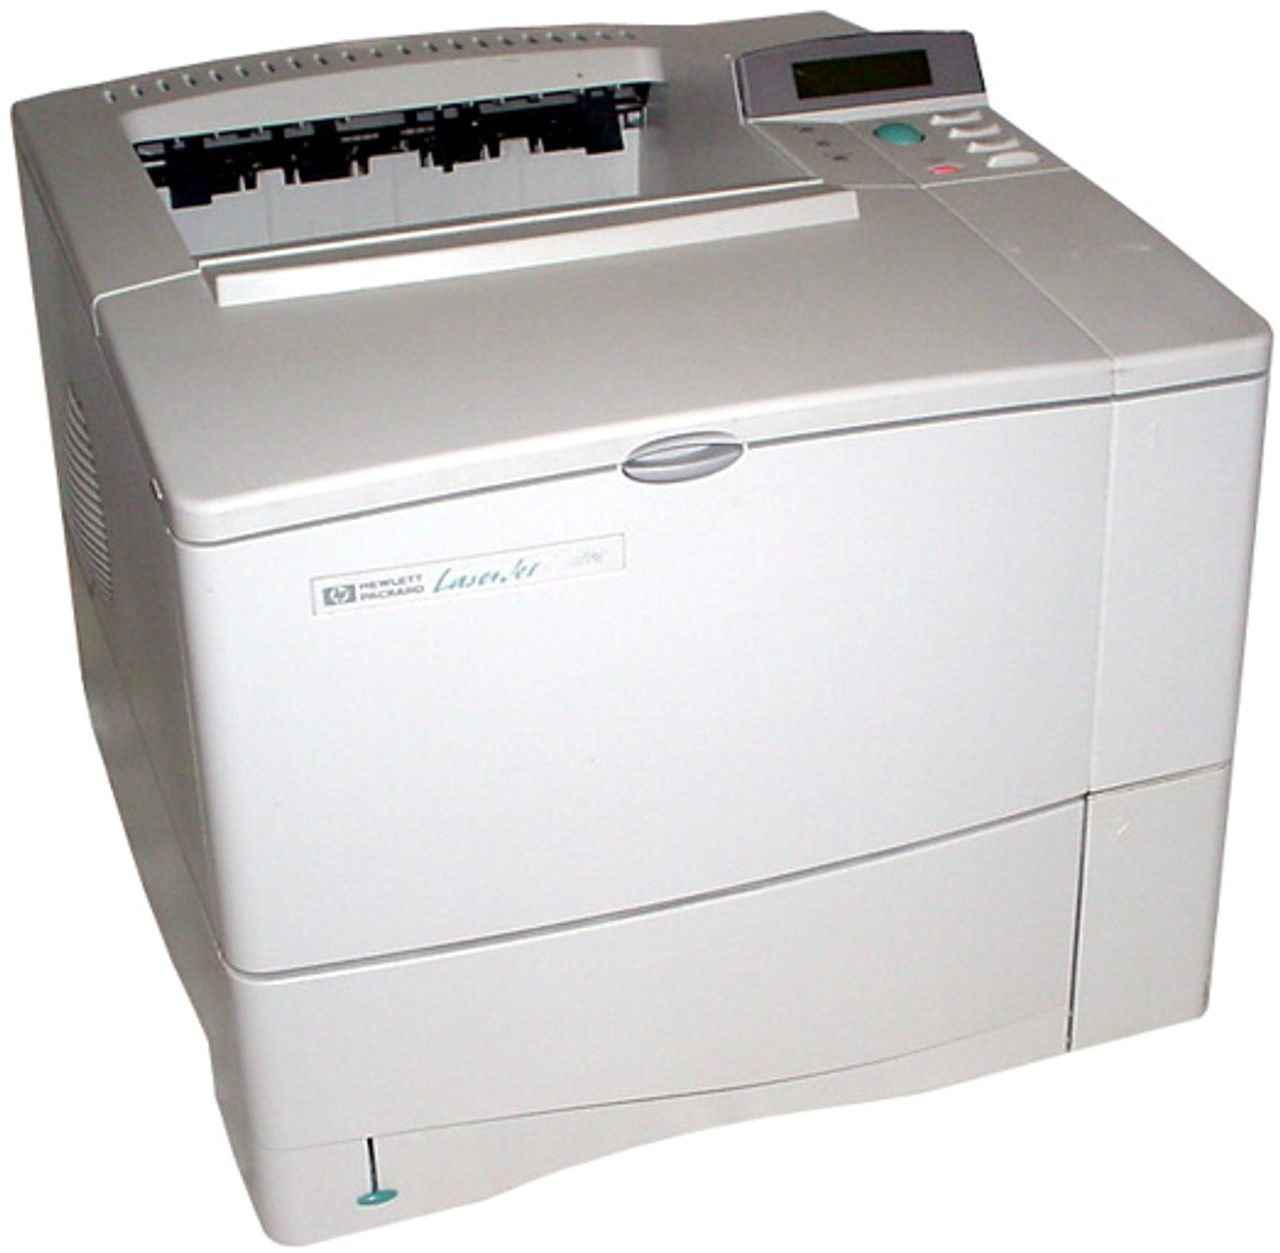 HP LaserJet 4000 - C4118A - HP Laser Printer for sale